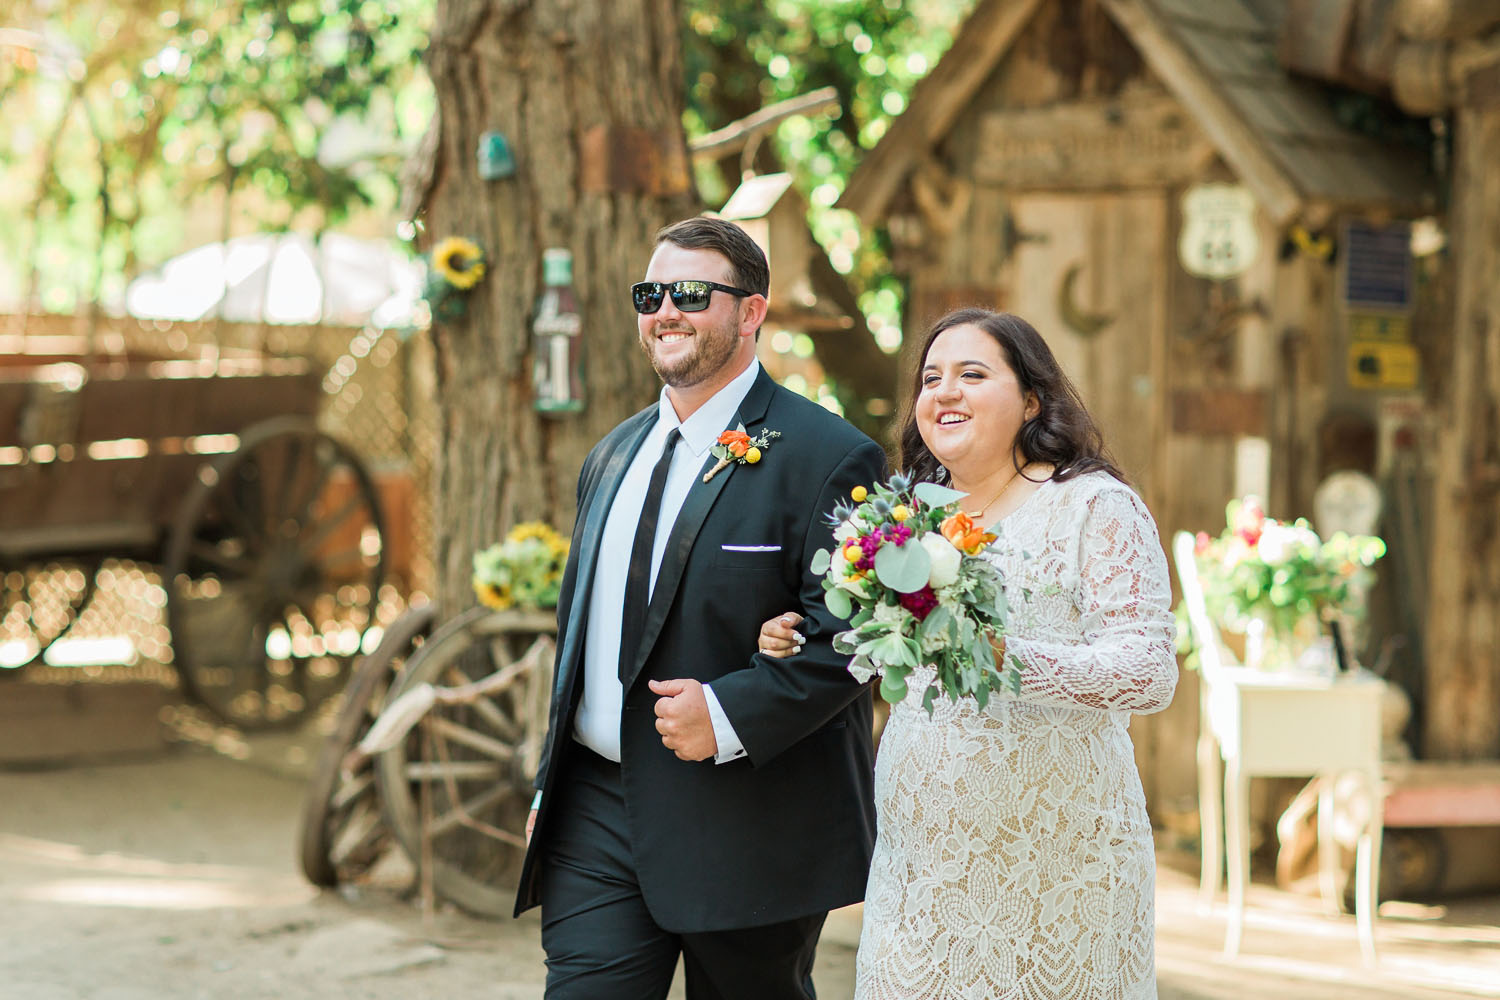 The Photege - Elegant Boho Wedding on Suburu Farm in Bakersfield California- Cassie and Darin Buoni-3040